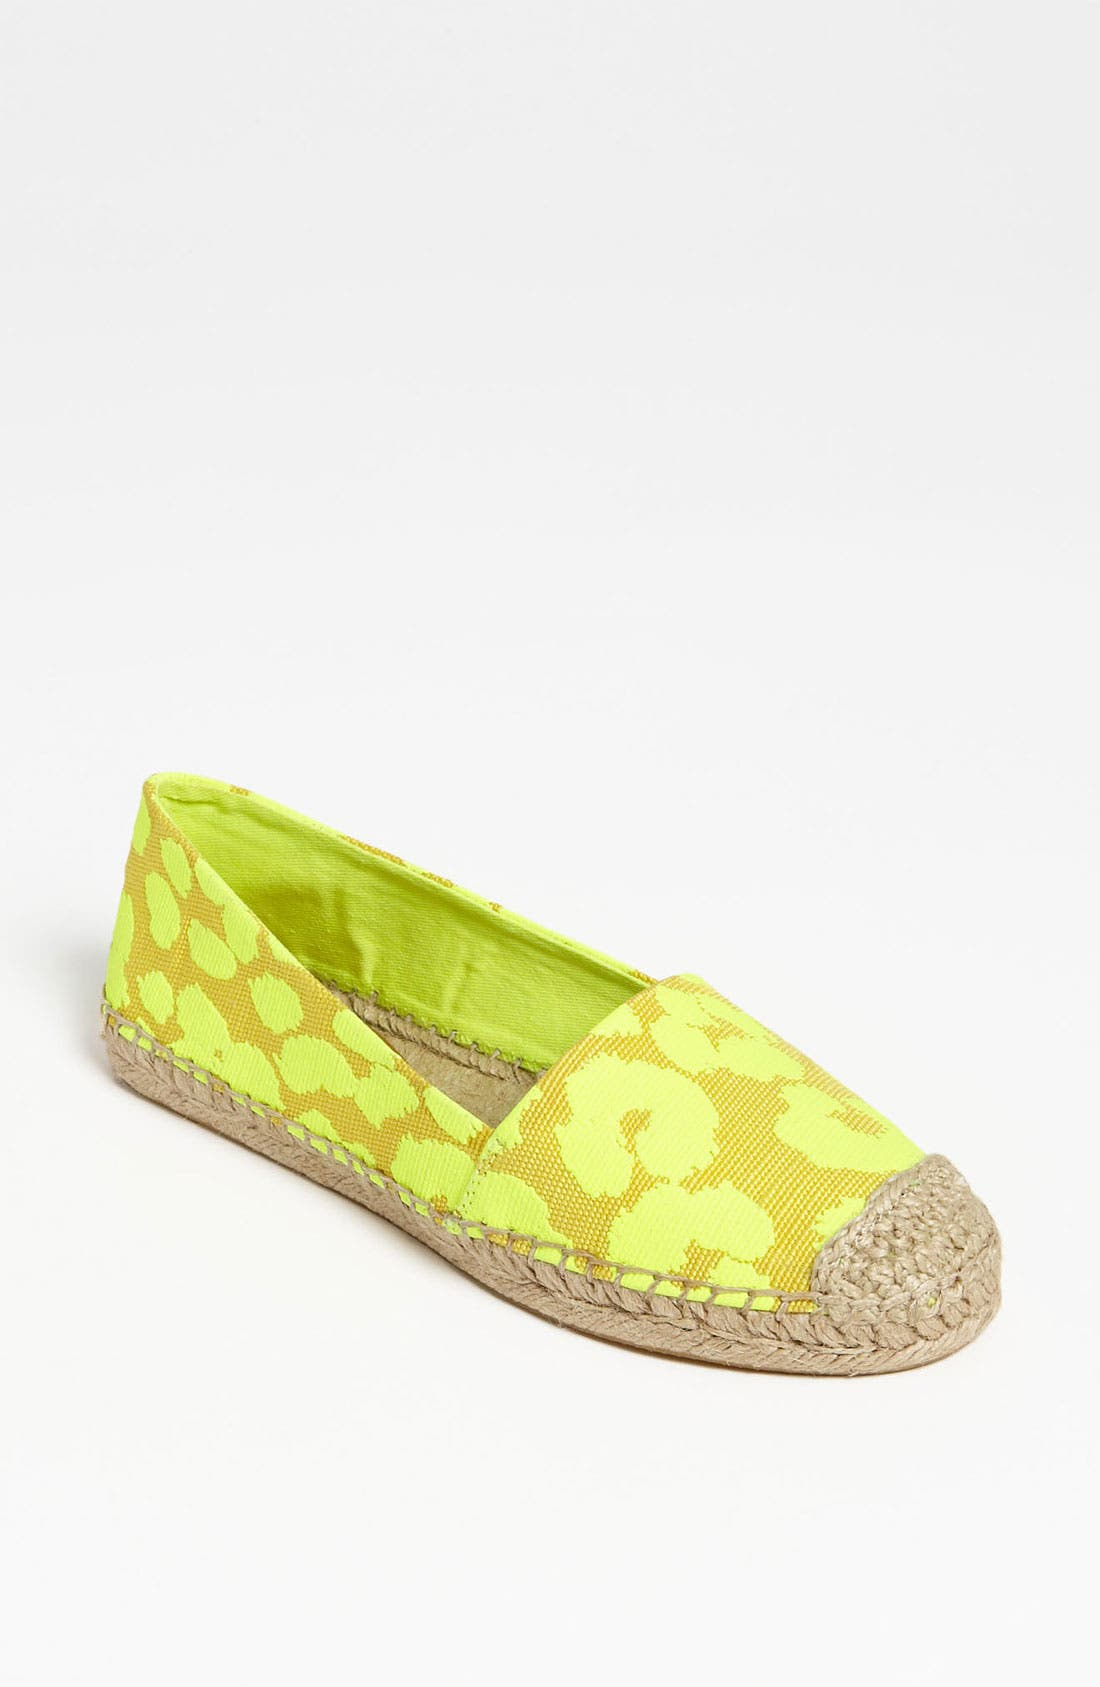 Main Image - Juicy Couture 'Gigi' Espadrille Flat